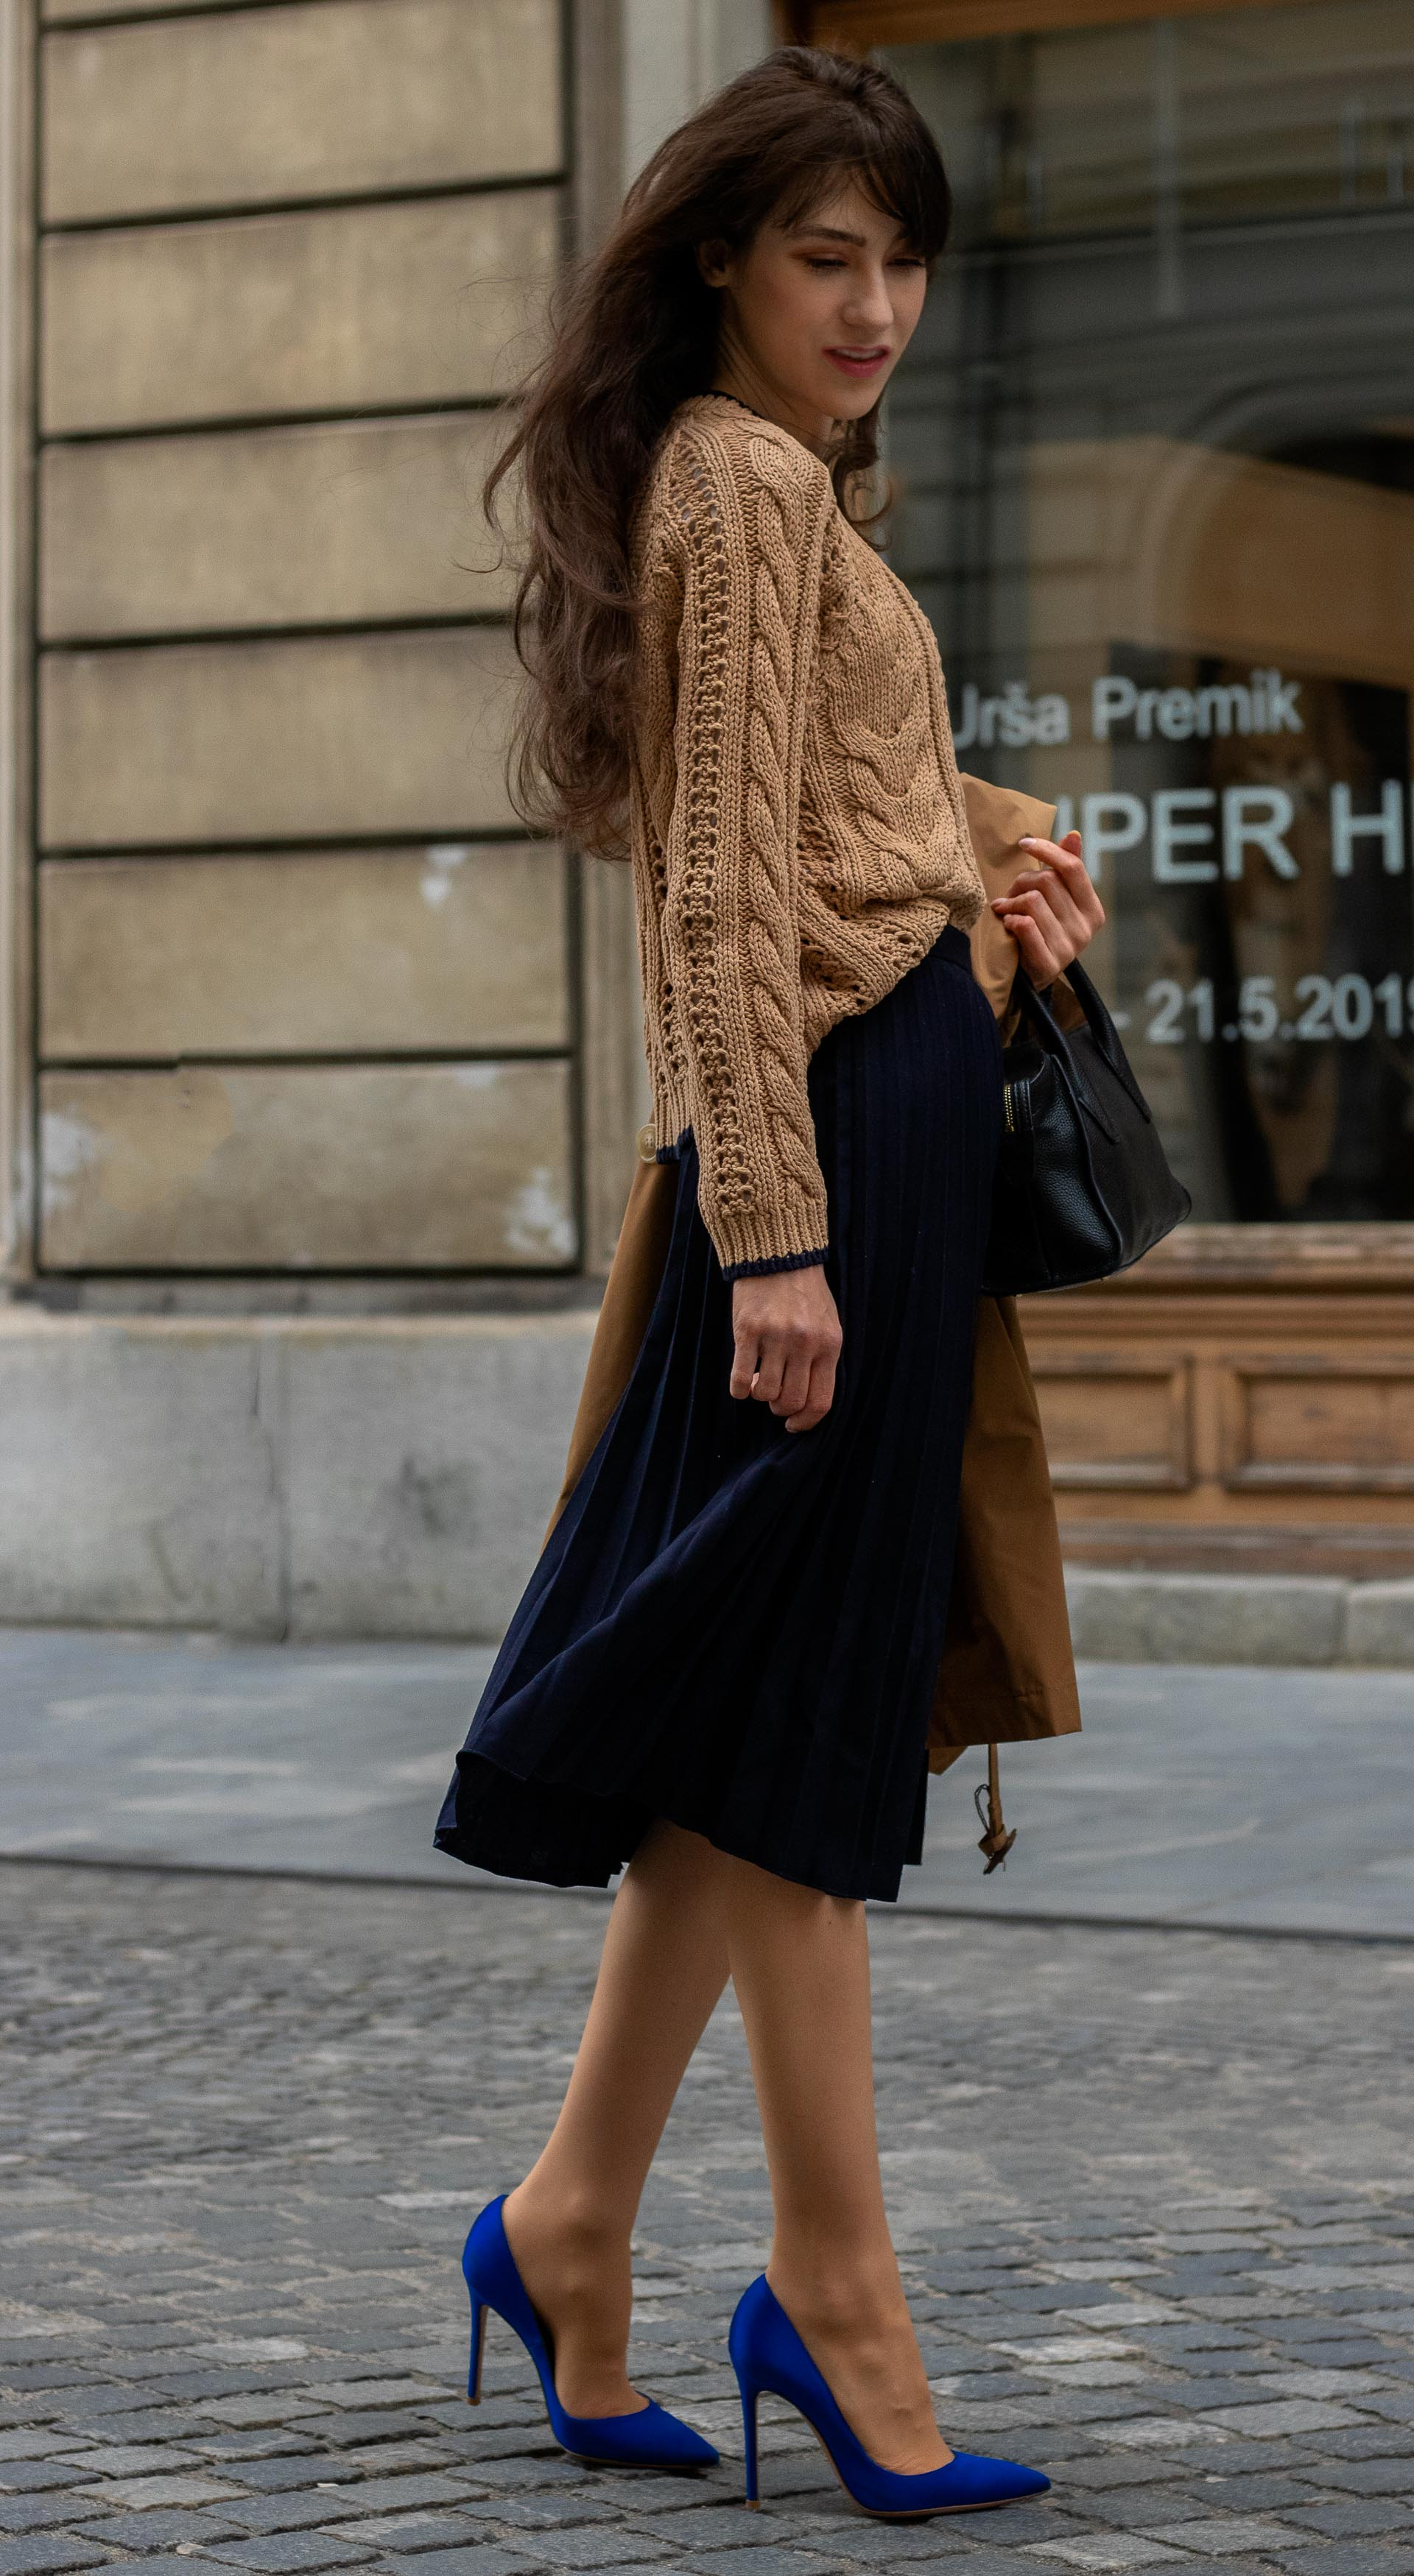 Fashion blogger Veronika Lipar of Brunette from Wall Street wearing camel Mango knit sweater and blue pleated midi skirt with Gianvito Rossi blue pumps on the street in spring